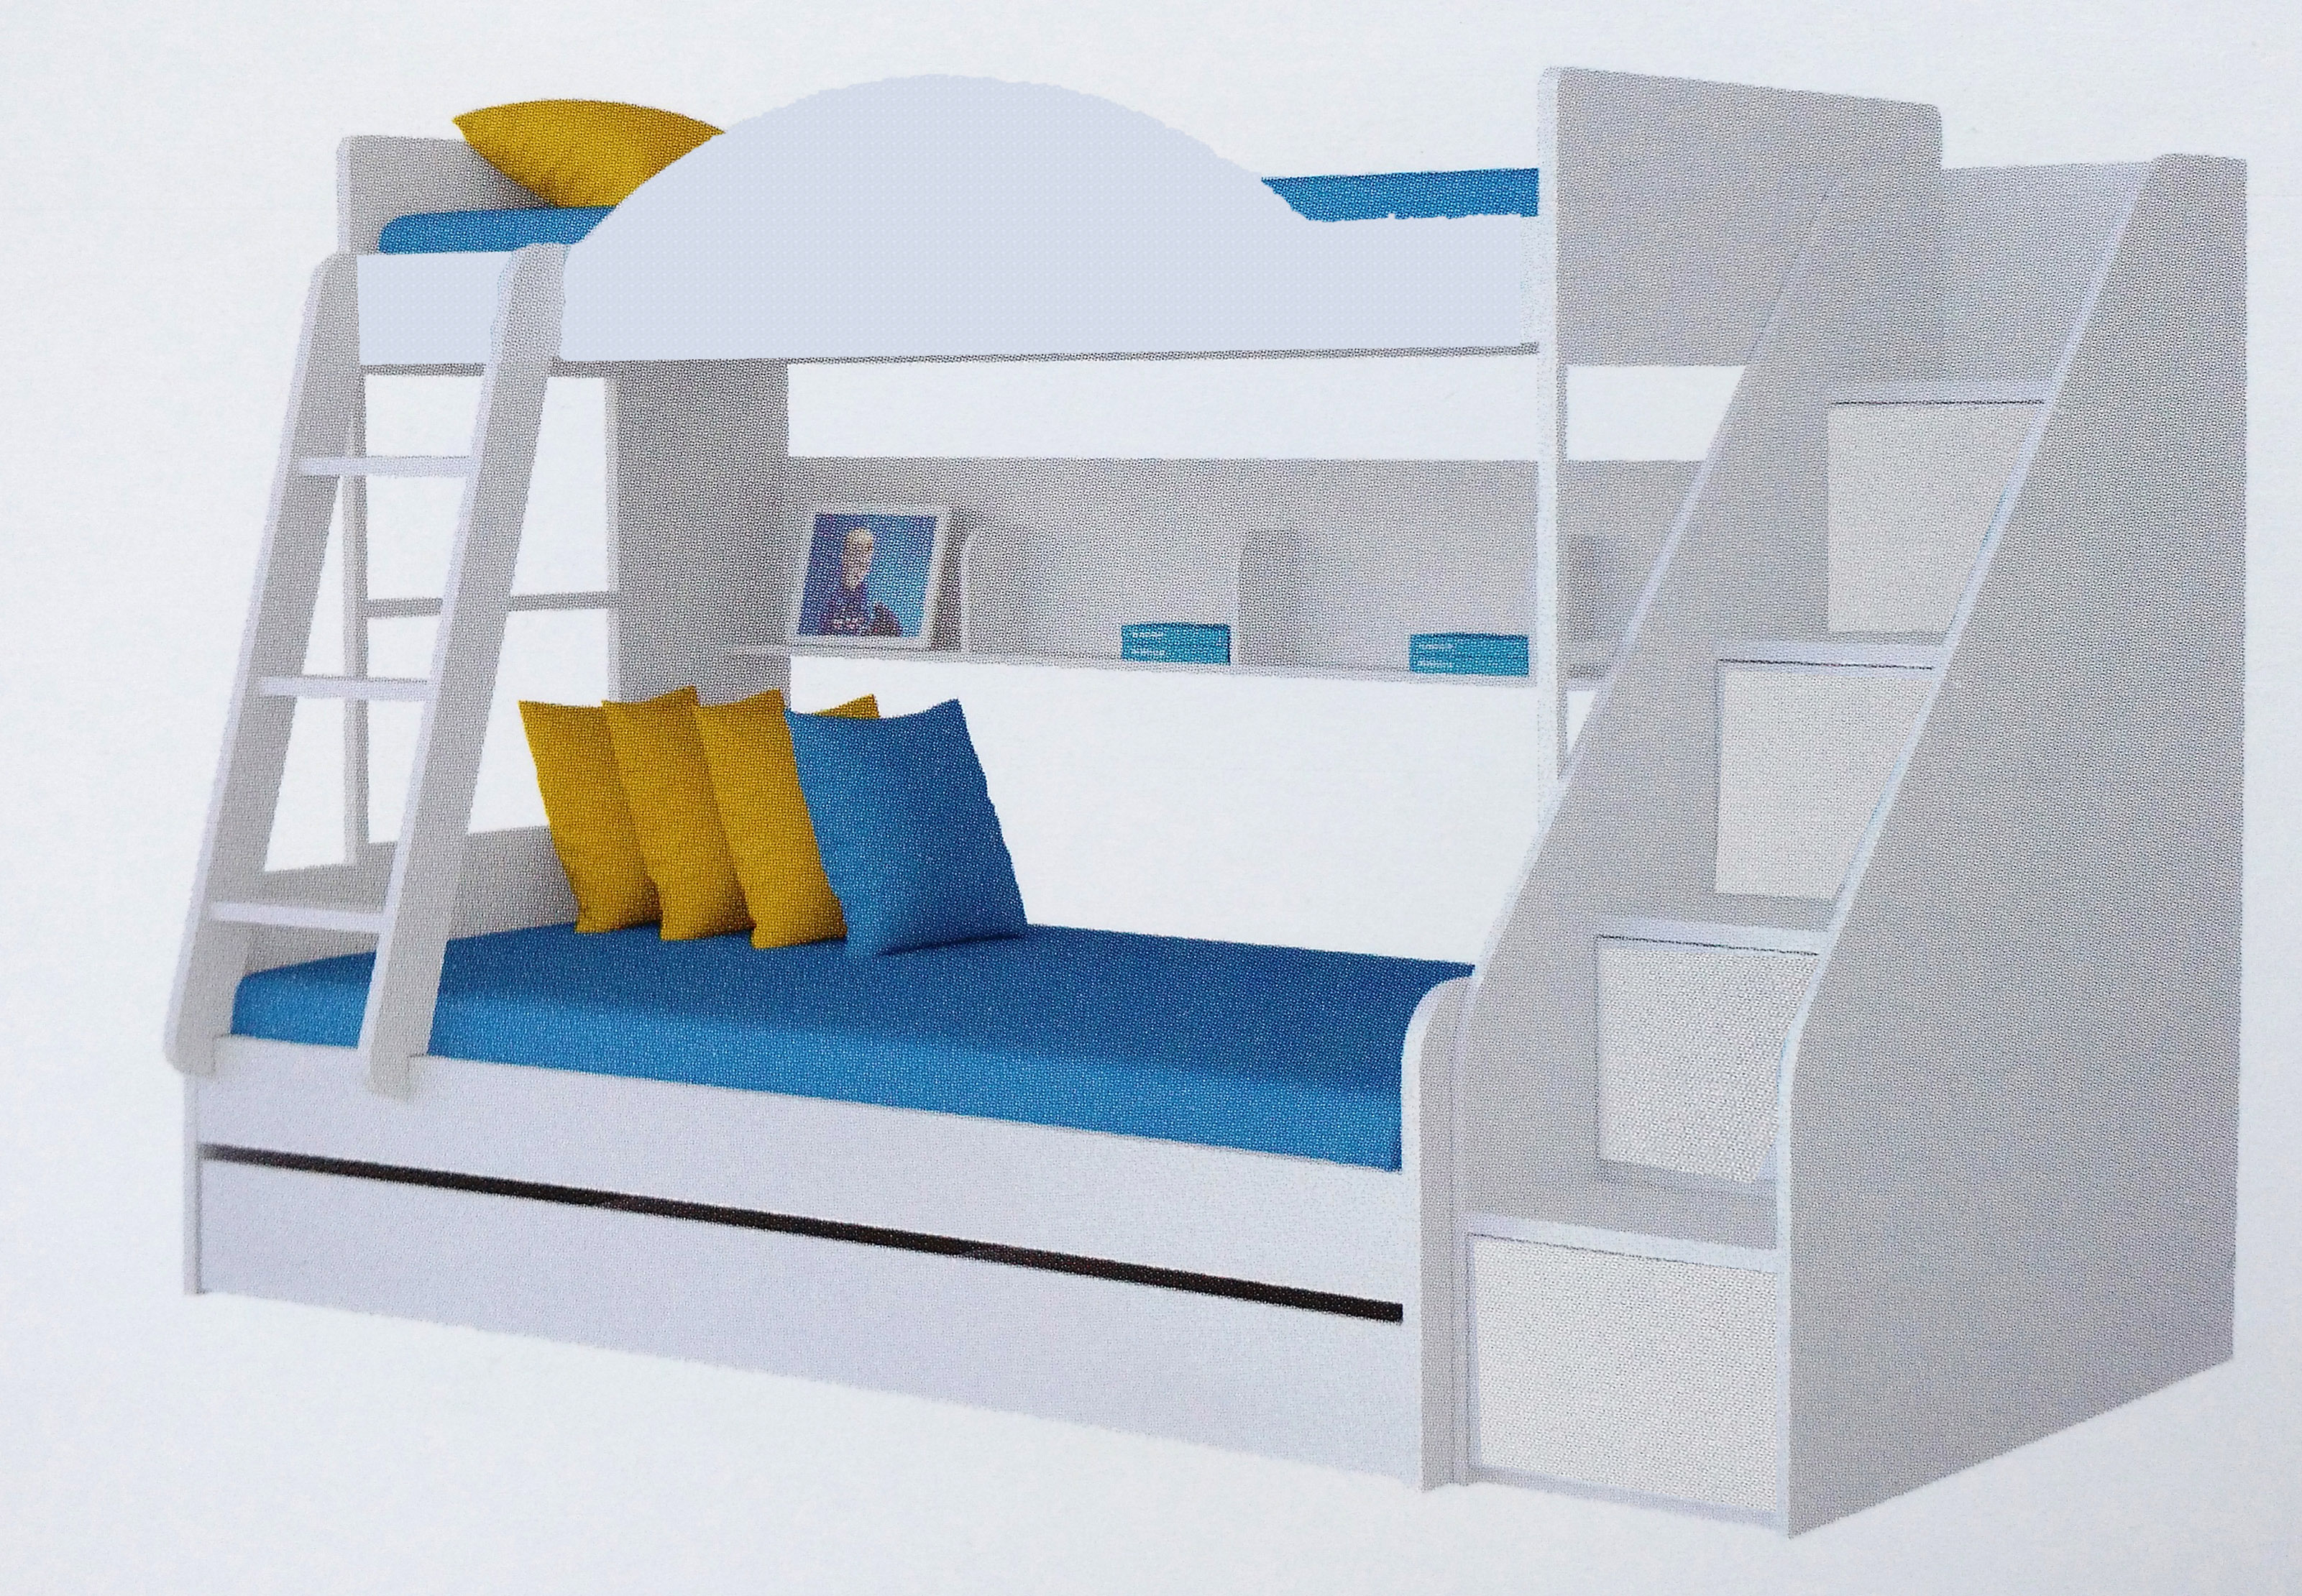 twin over twin bunker bed these are referred to as standard bunk beds as the name says a twin over twin bunk bed is made of two twin size 39 x 75 - Bunkers Loft Bed